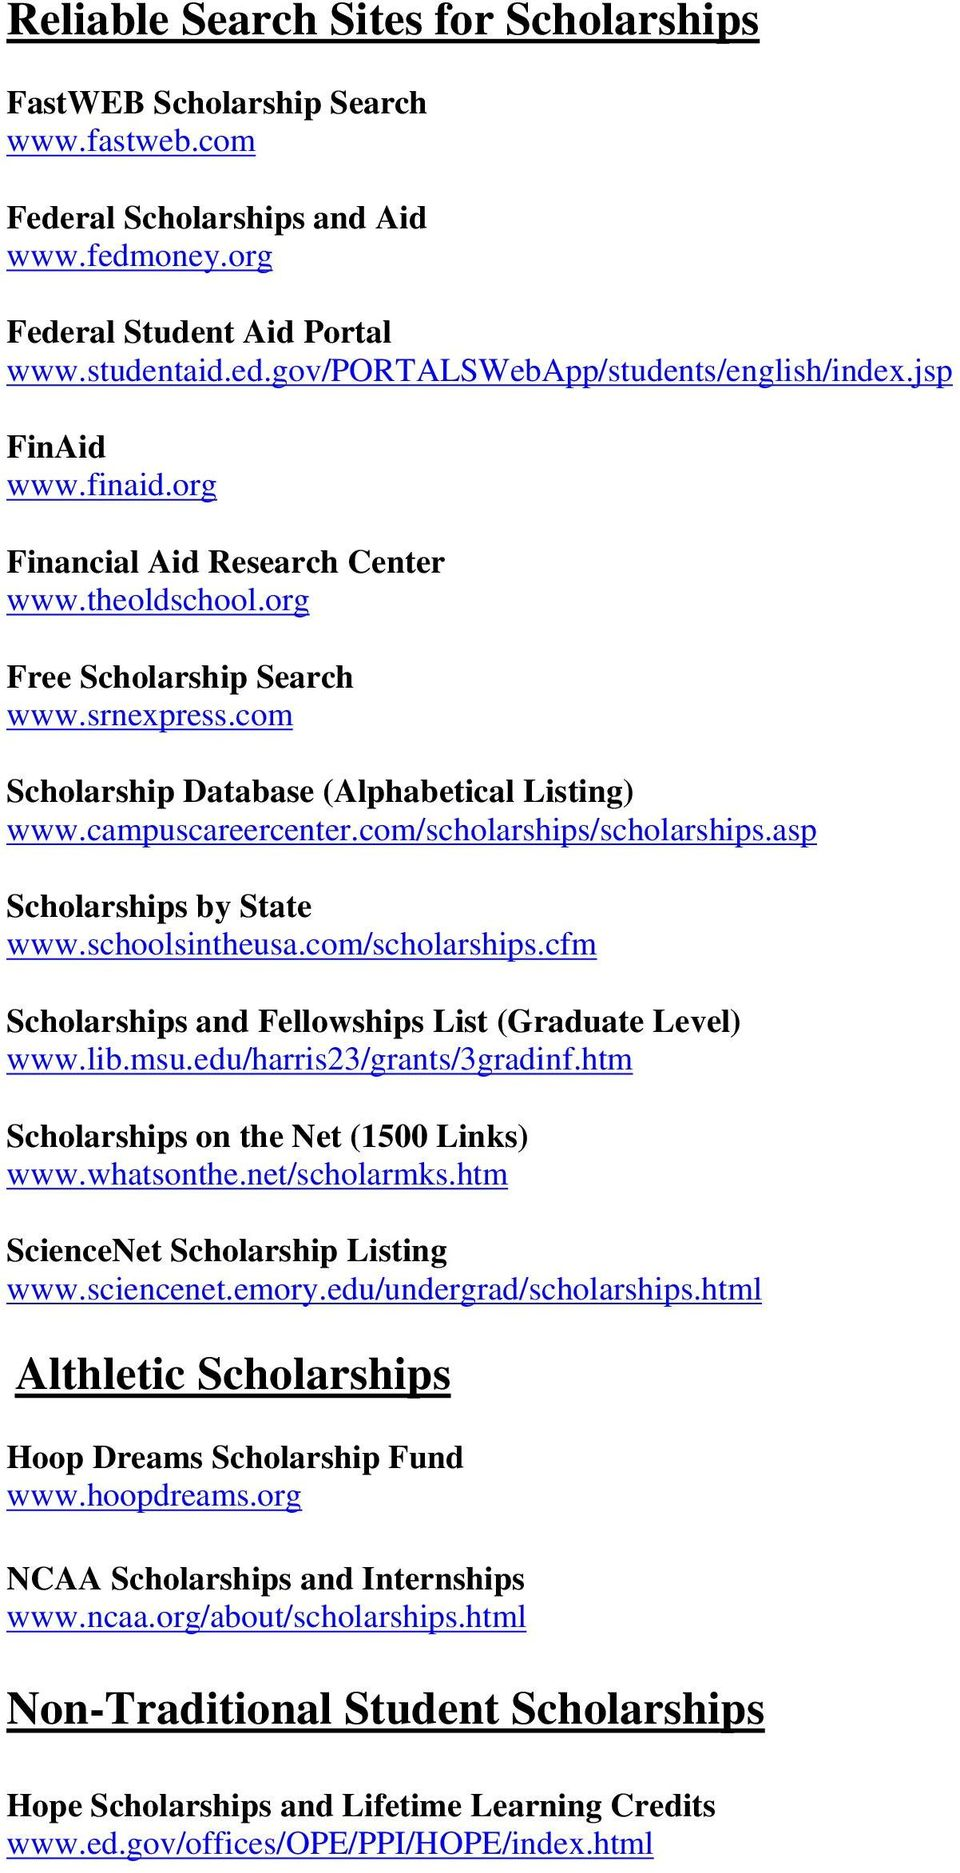 Scholarship Opportunities - PDF